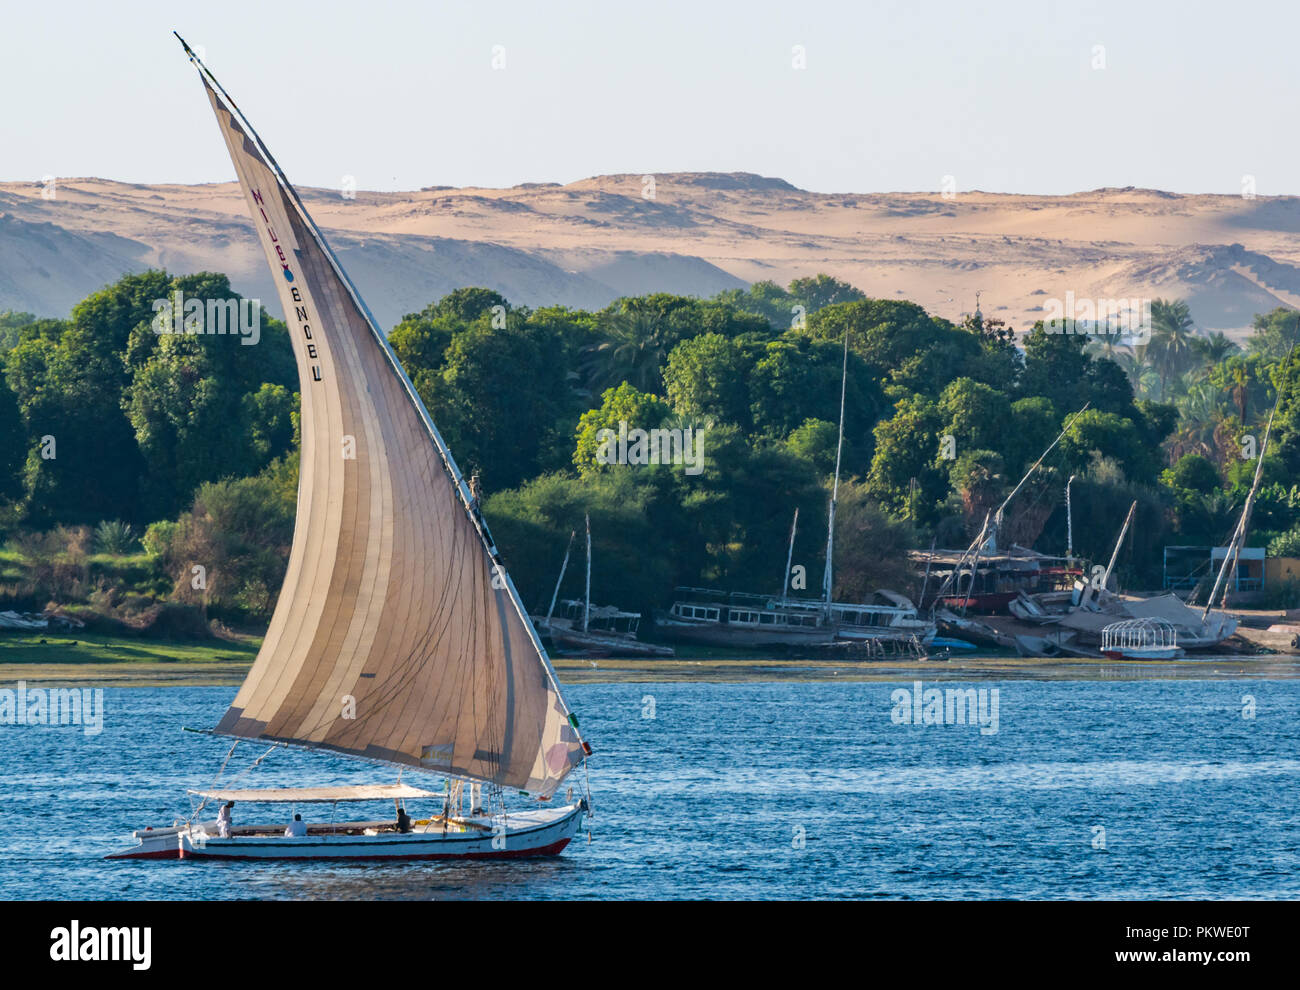 Traditional felucca sailing boats, River Nile with trees on riverbank and desert cliffs in distance in dusk light, Aswan, Egypt, Africa - Stock Image